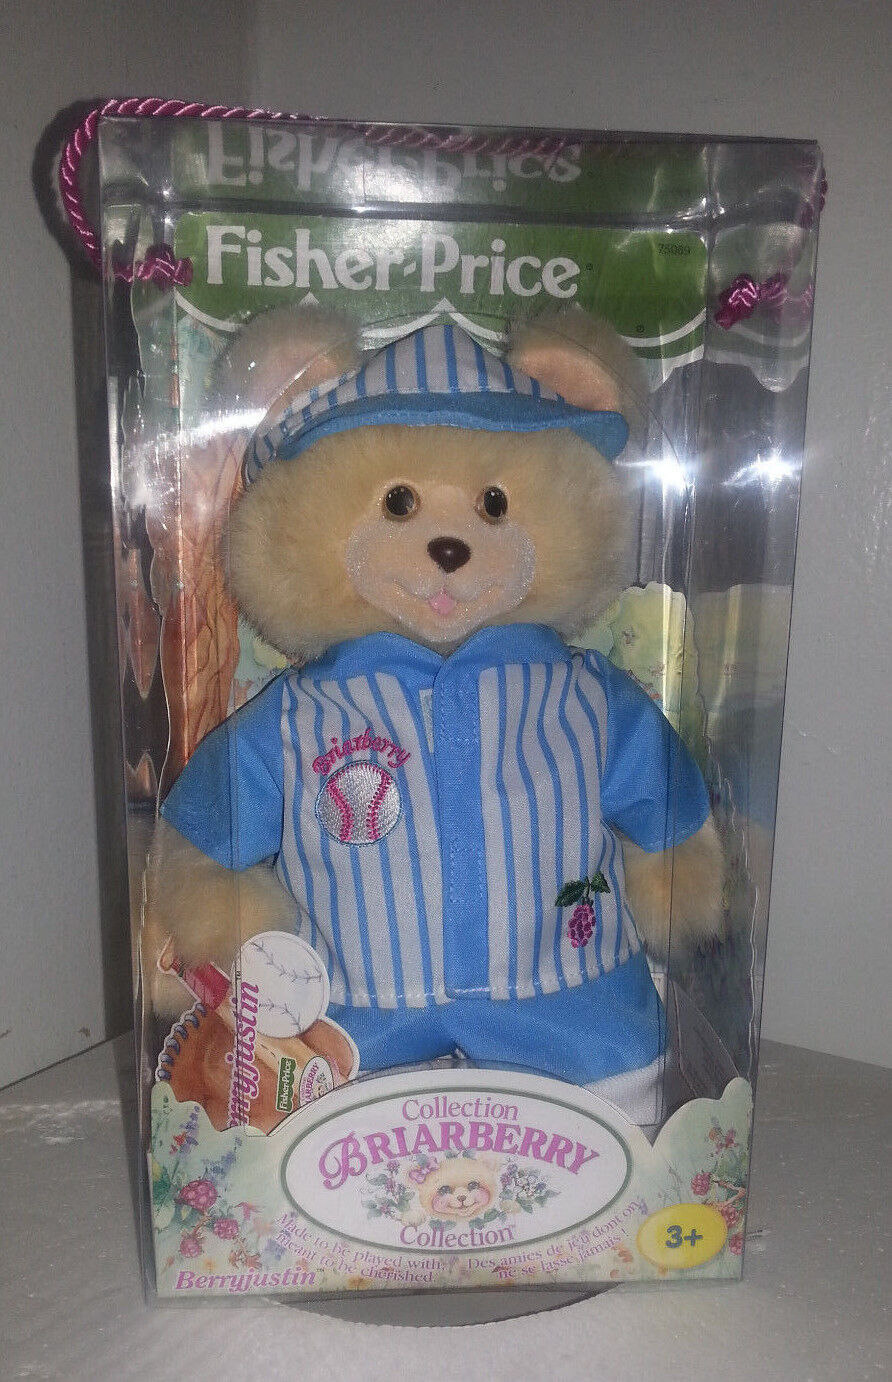 BERRYJUSTIN FROM THE BRIARBERRY BEARS COLLECTION